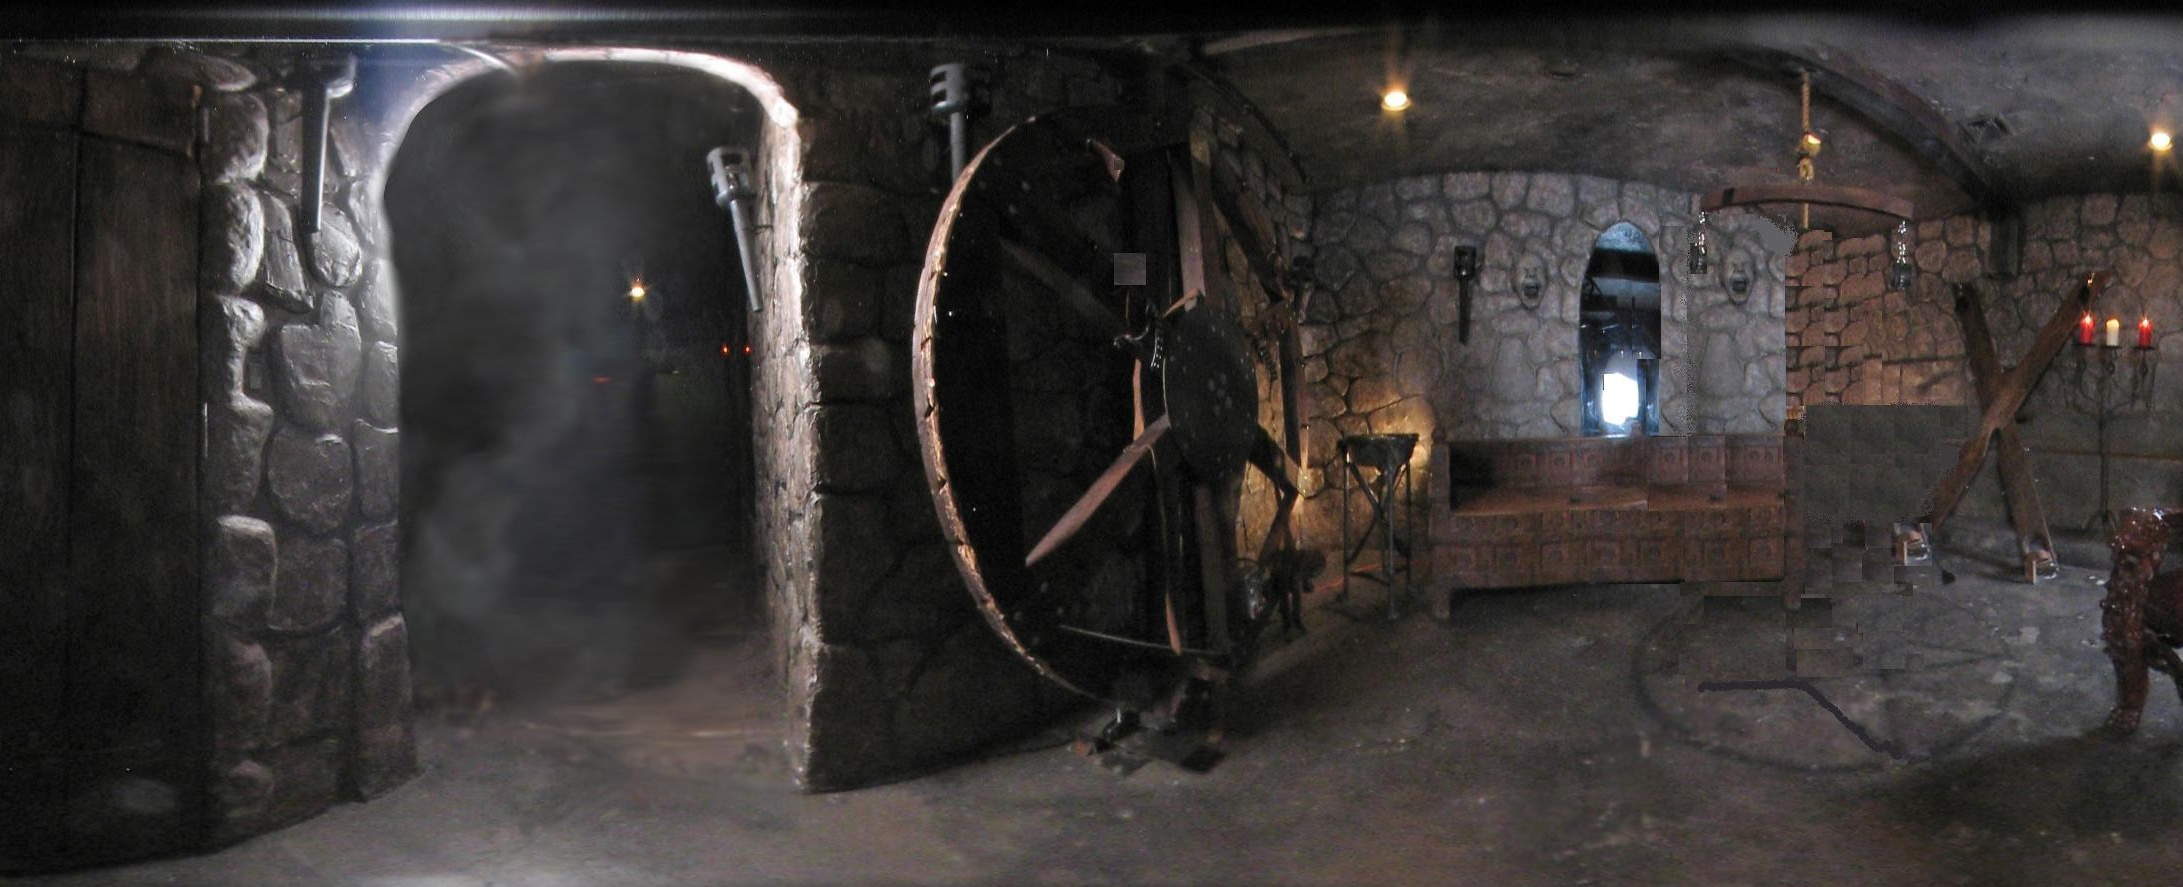 sex dungeons nyc